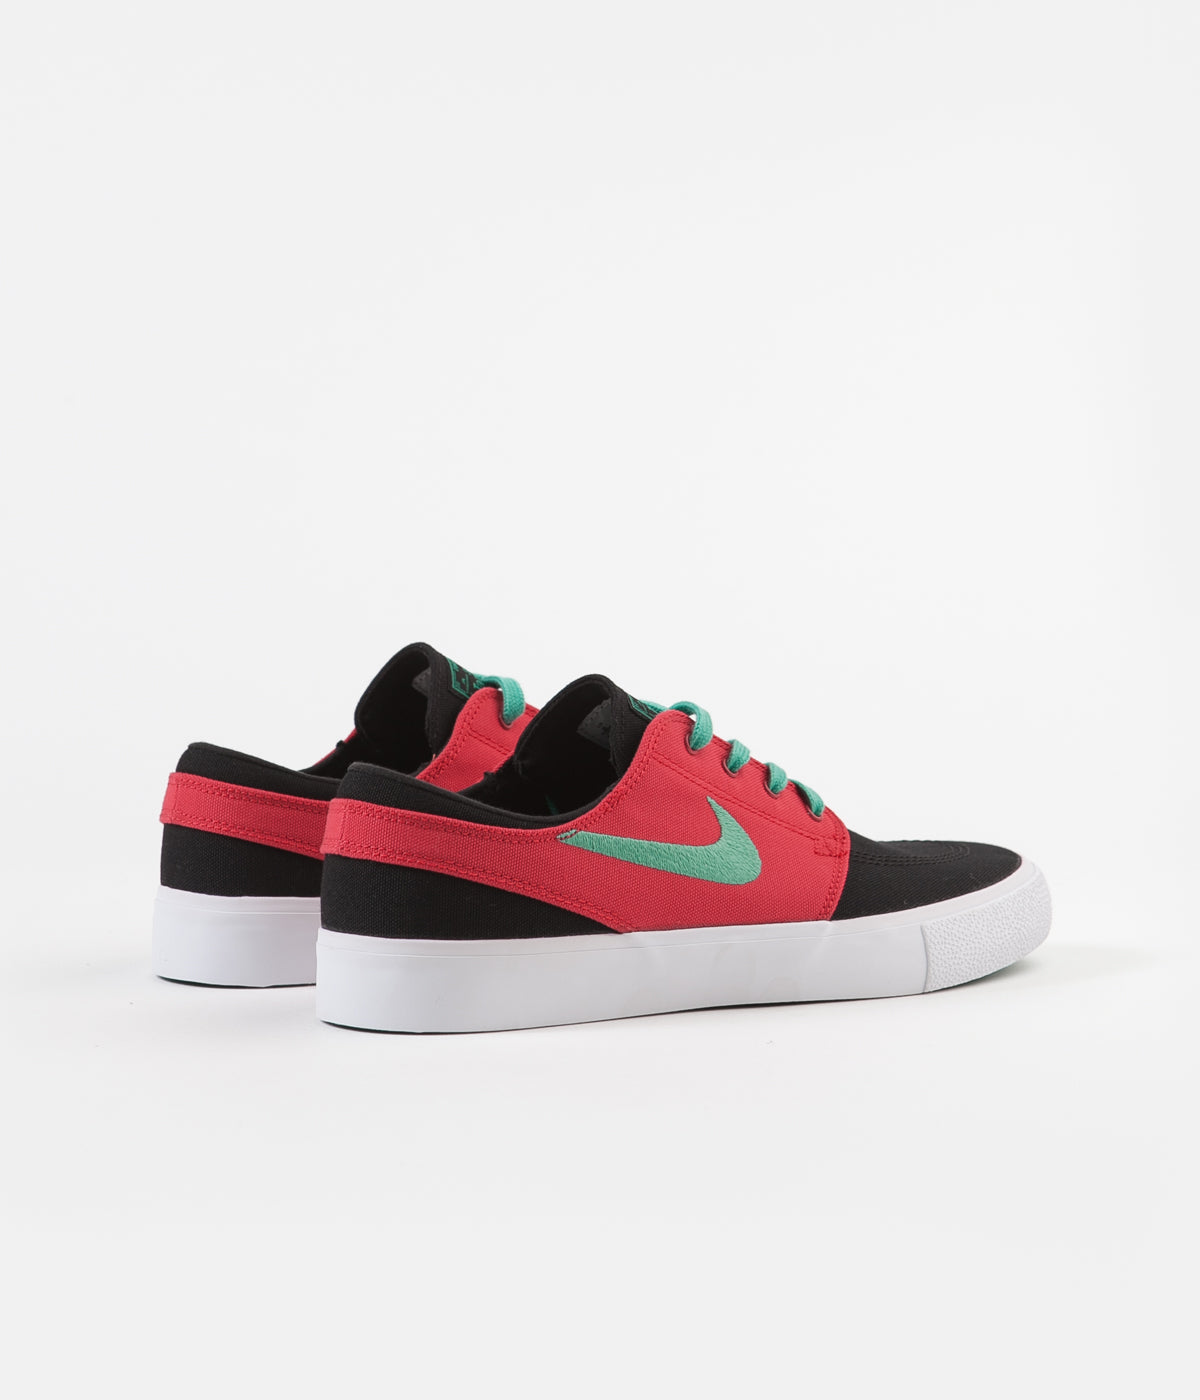 Nike SB Janoski Canvas Remastered Shoes - Black / True Green - Atom Red - White